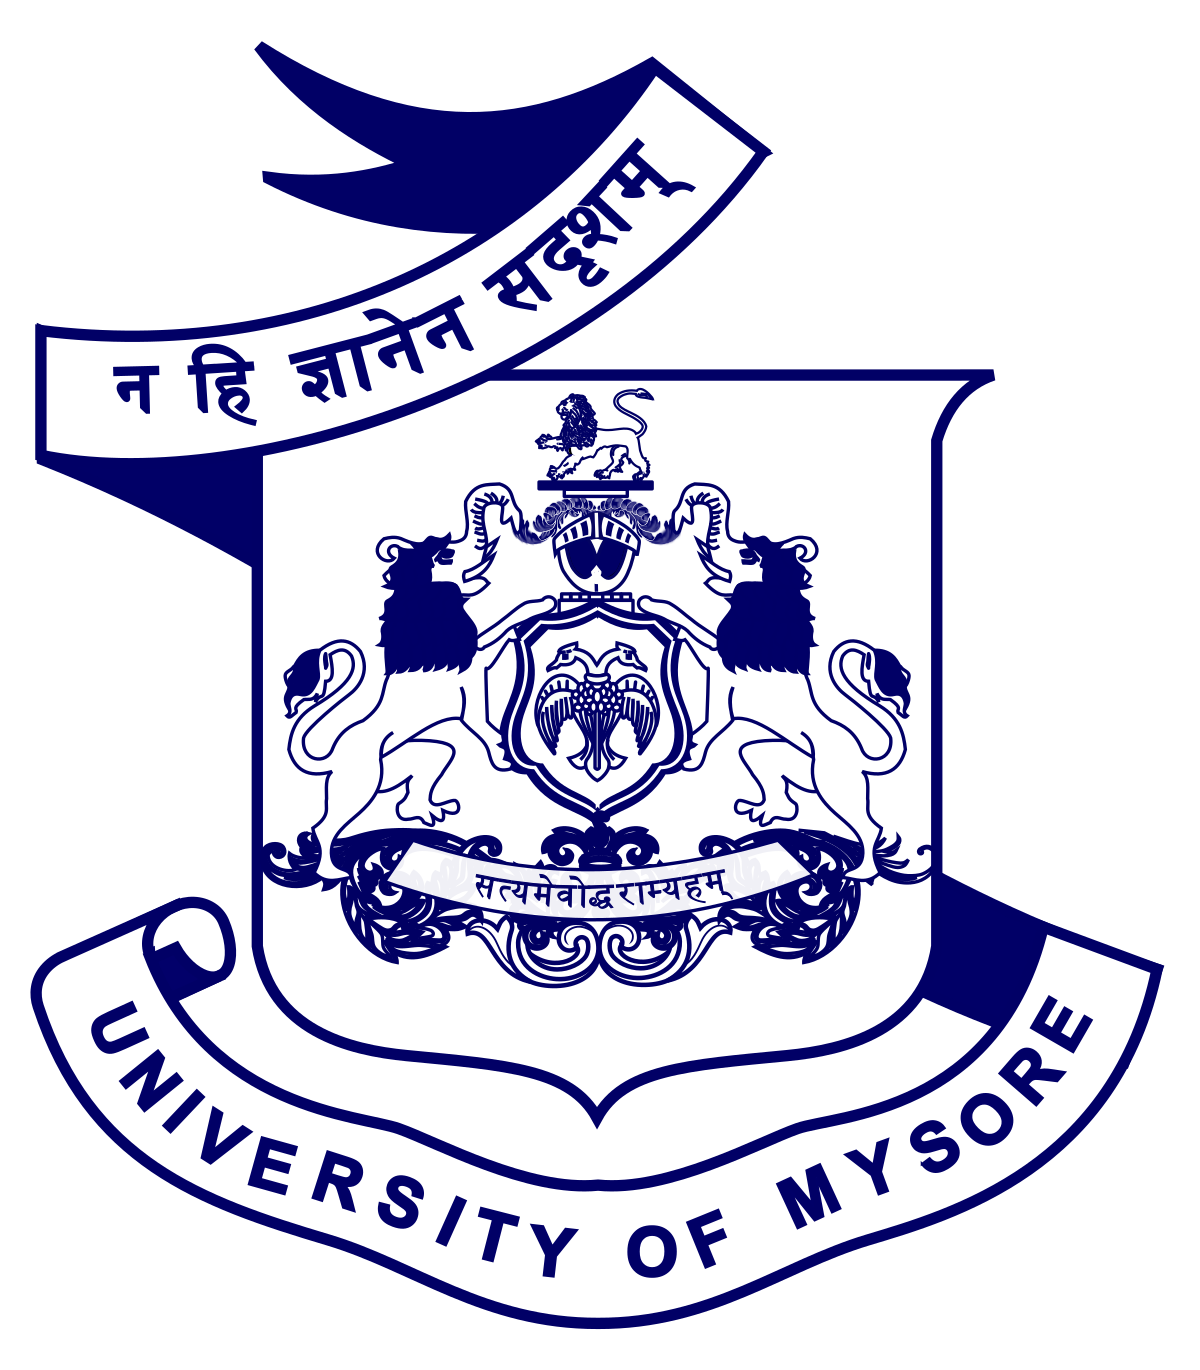 University of Mysore conference 2020